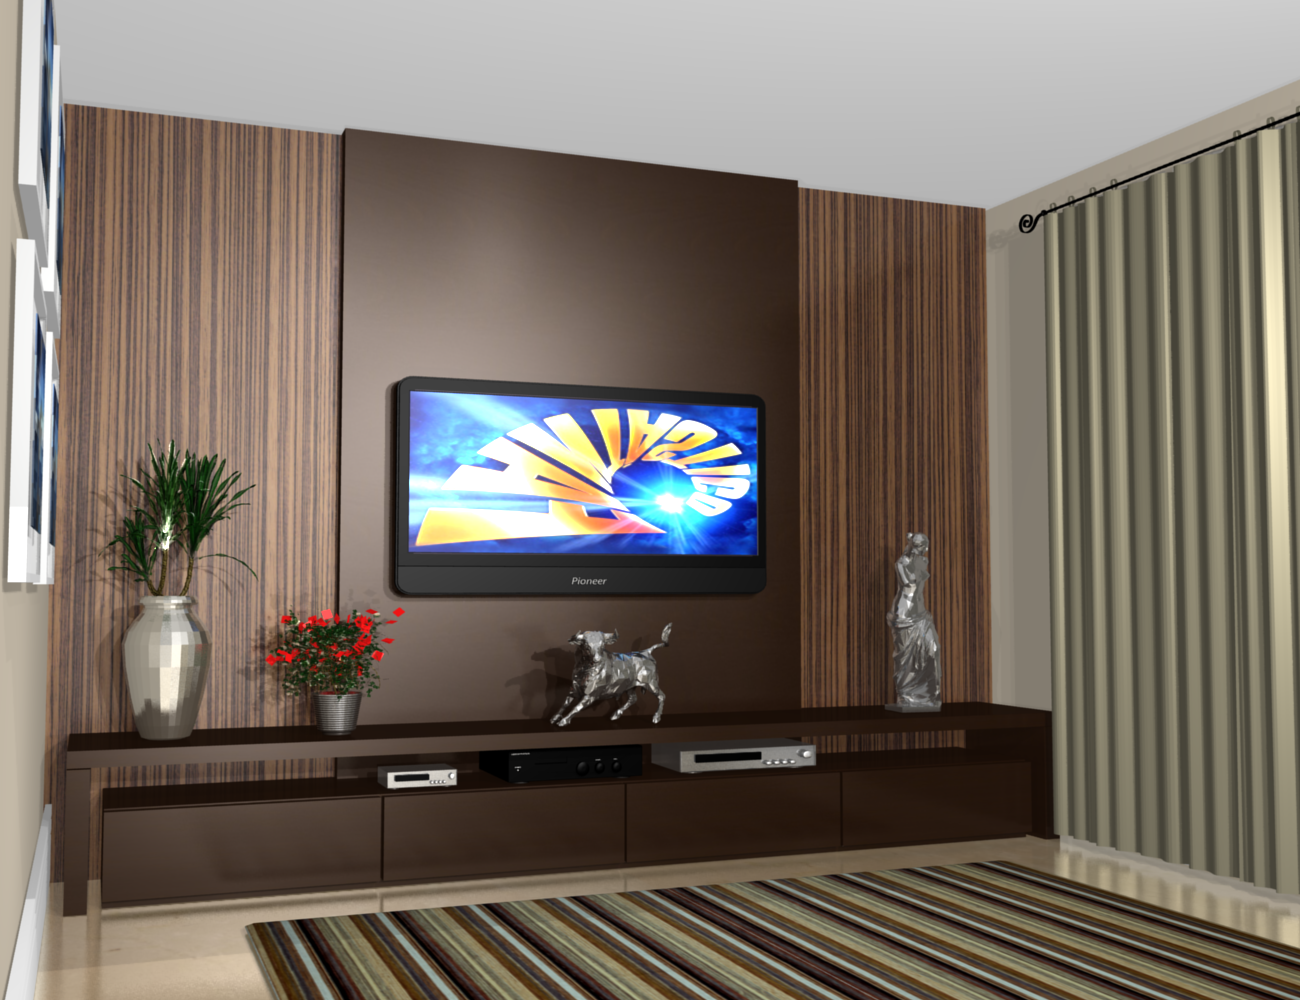 decoracao de interiores home theater:Home Interior Design Sala